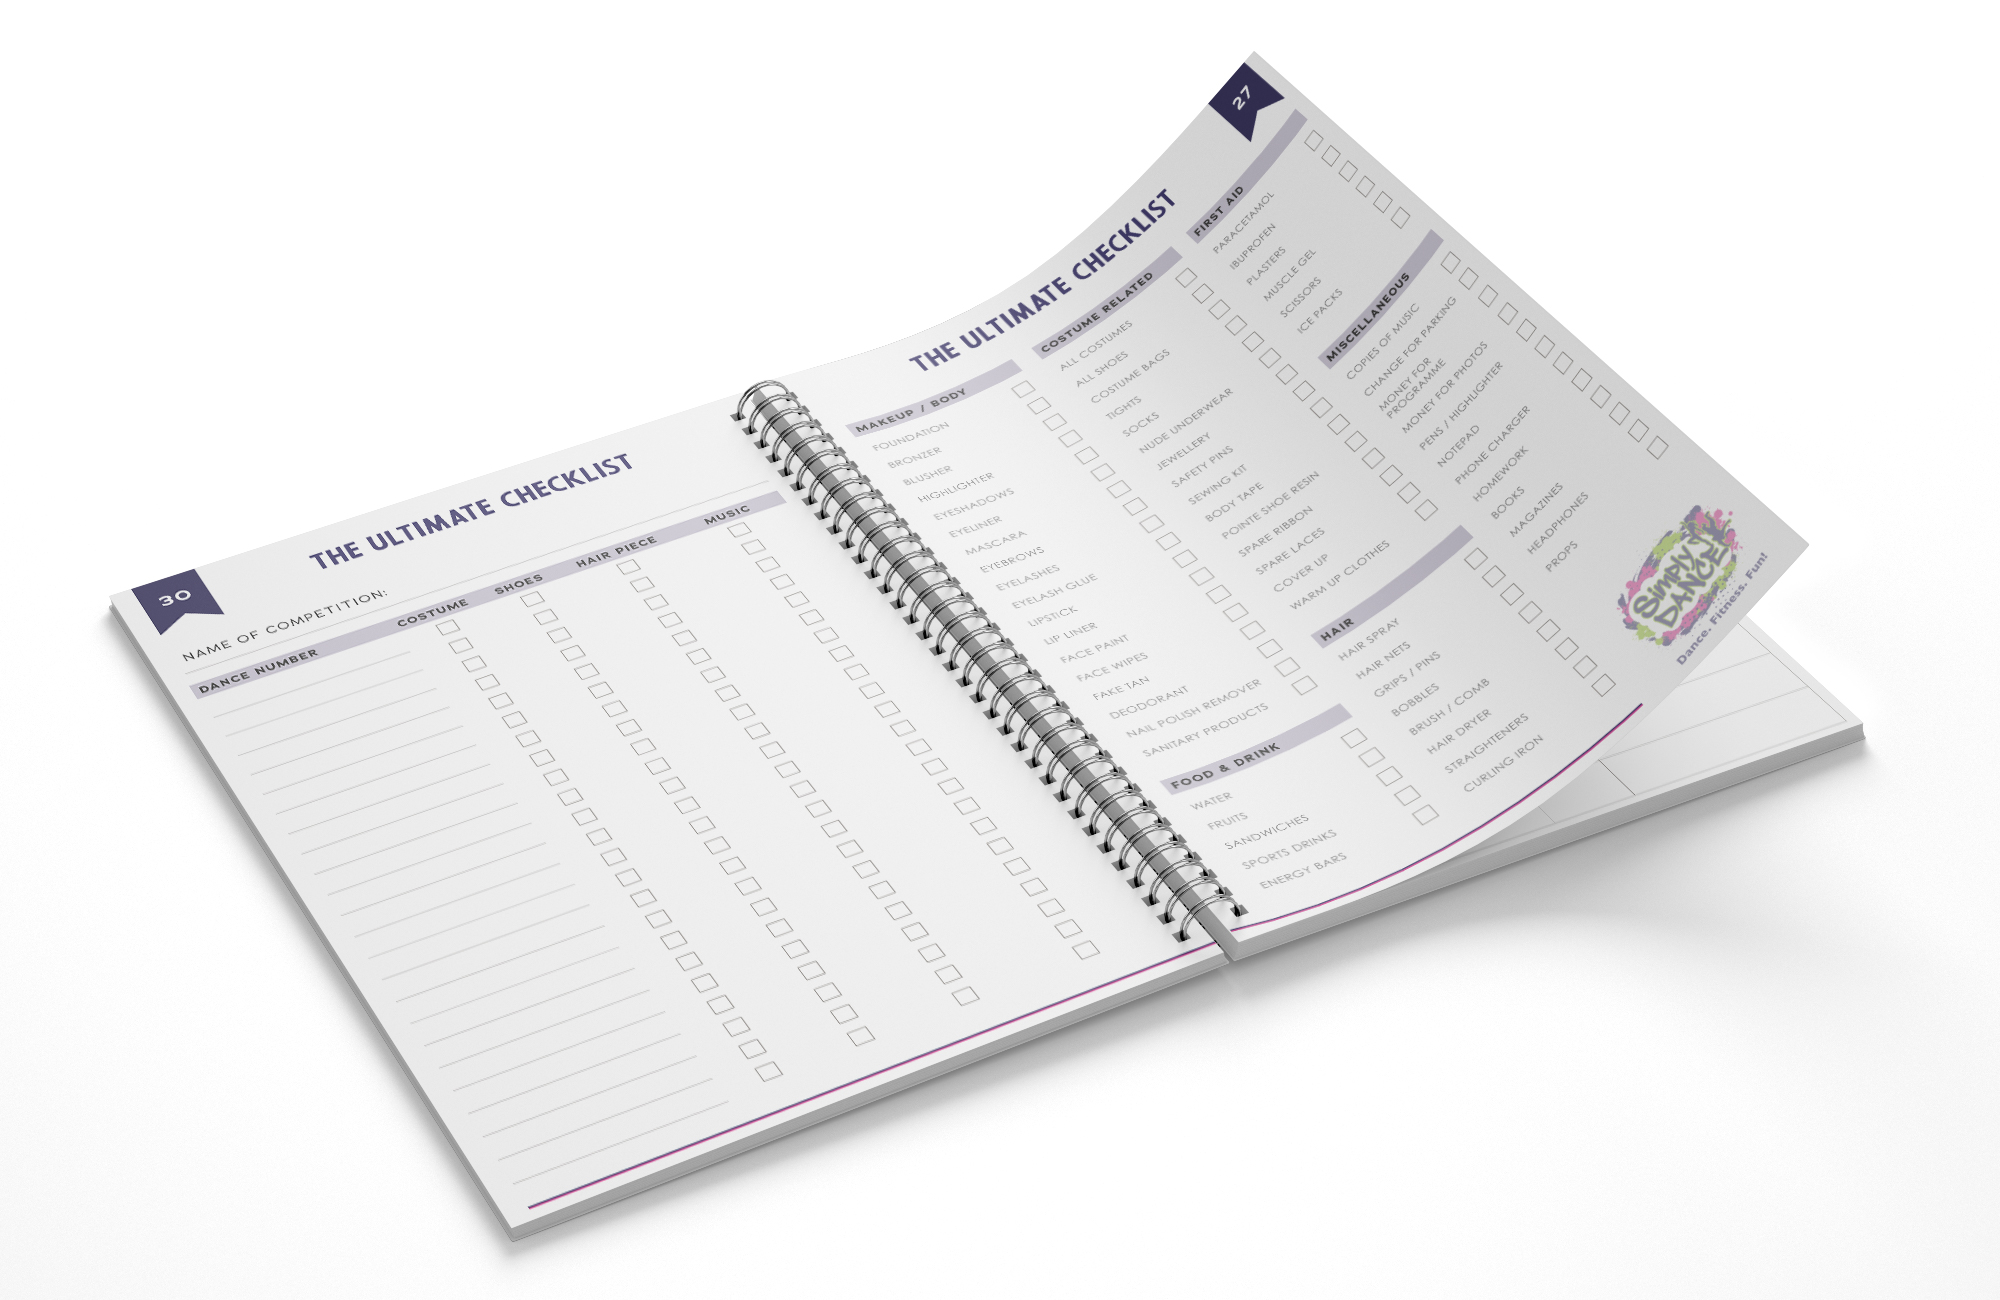 The Ultimate Checklist - Dance Journal